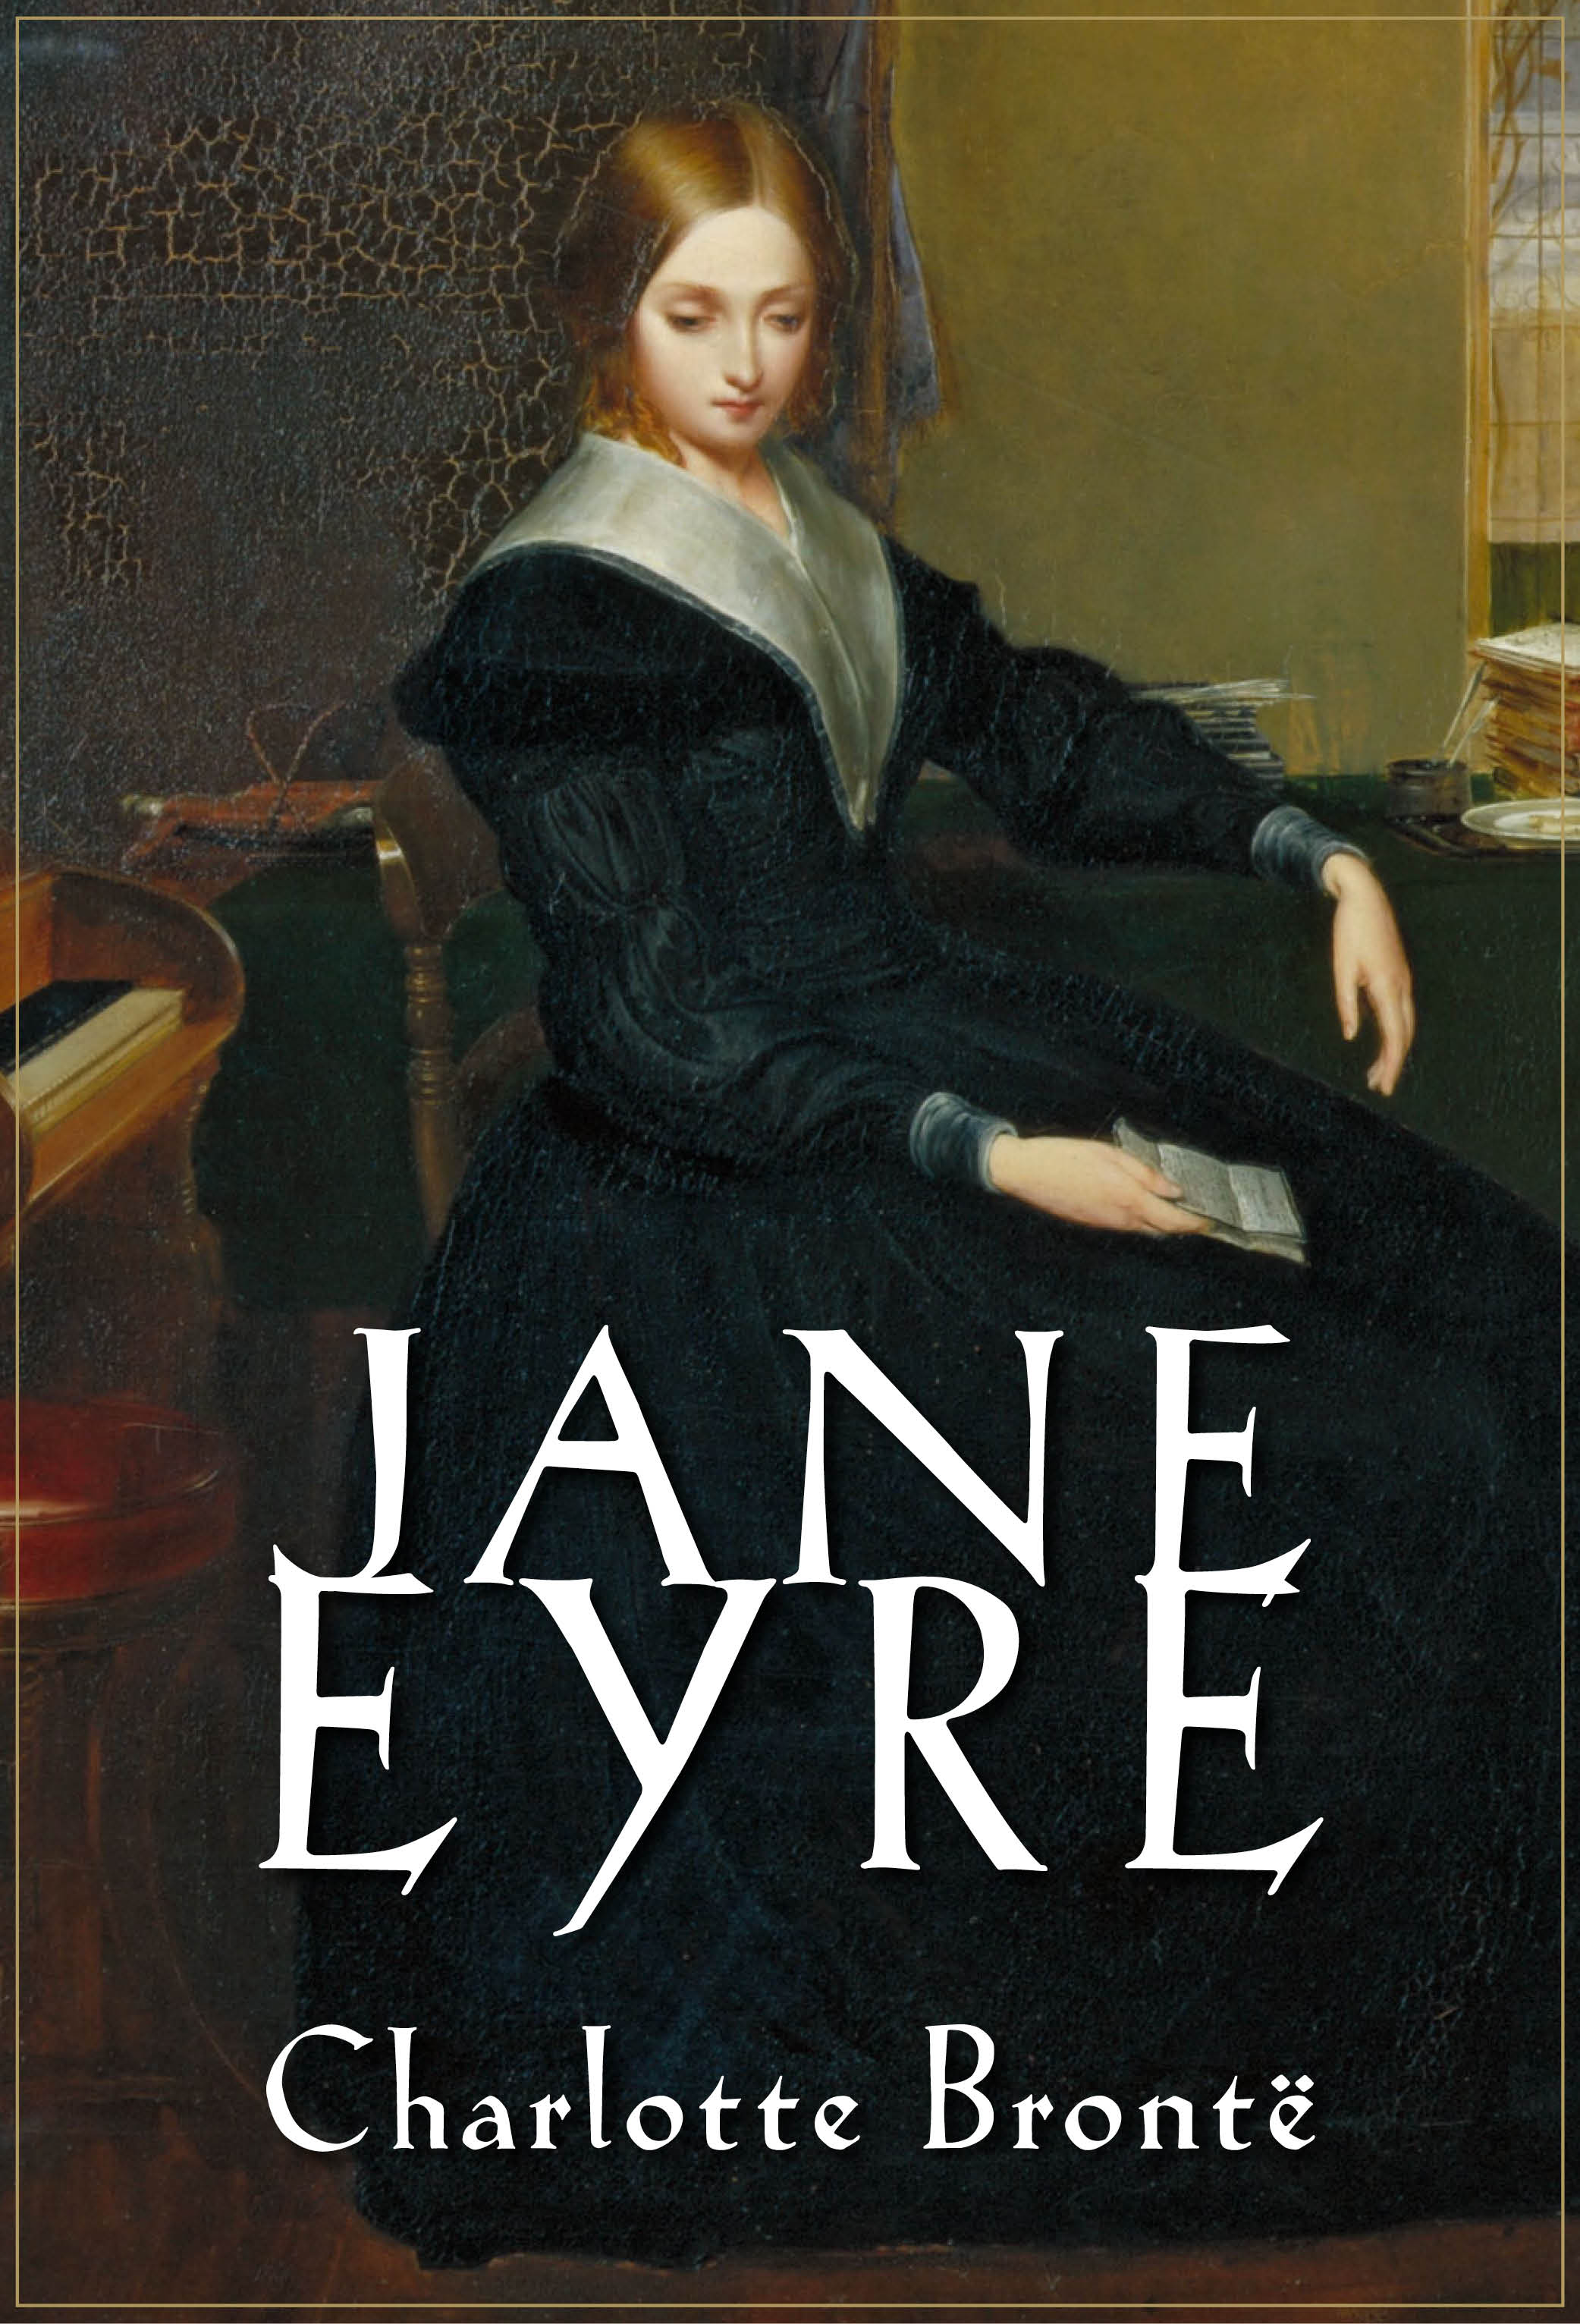 an examination of love as a dangerous and painful madness in jane eyre a novel by charlotte bronte A novel of protest against the philadelphia daily an examination of love as a dangerous and painful madness in jane eyre a novel by charlotte bronte.